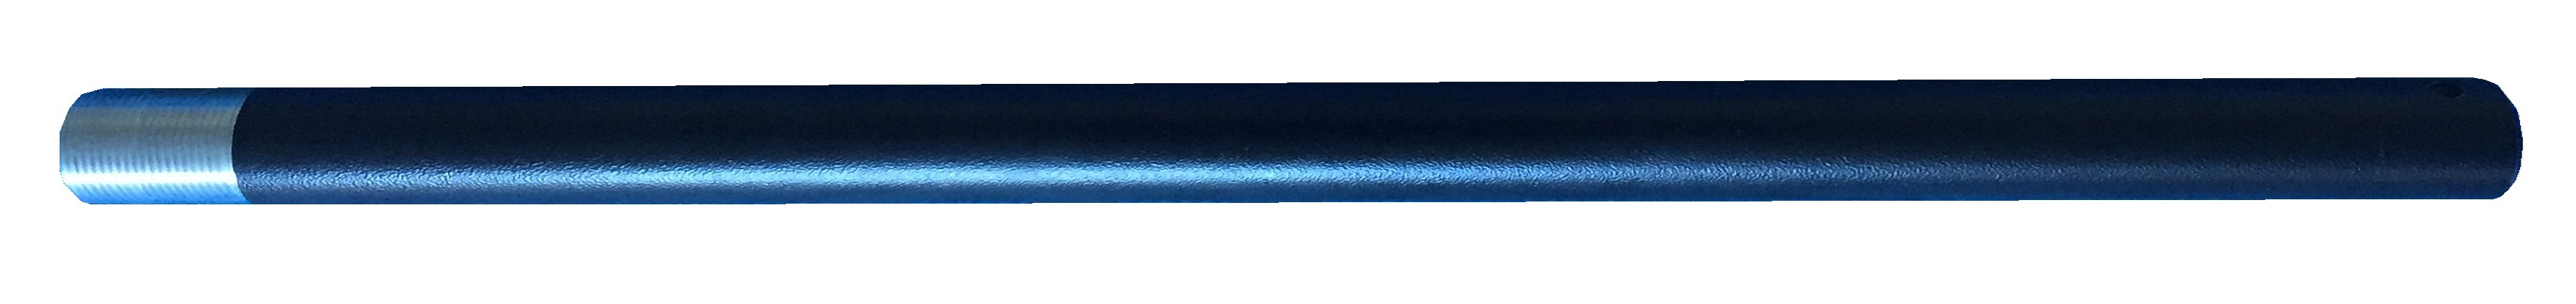 900mm Extension Pole